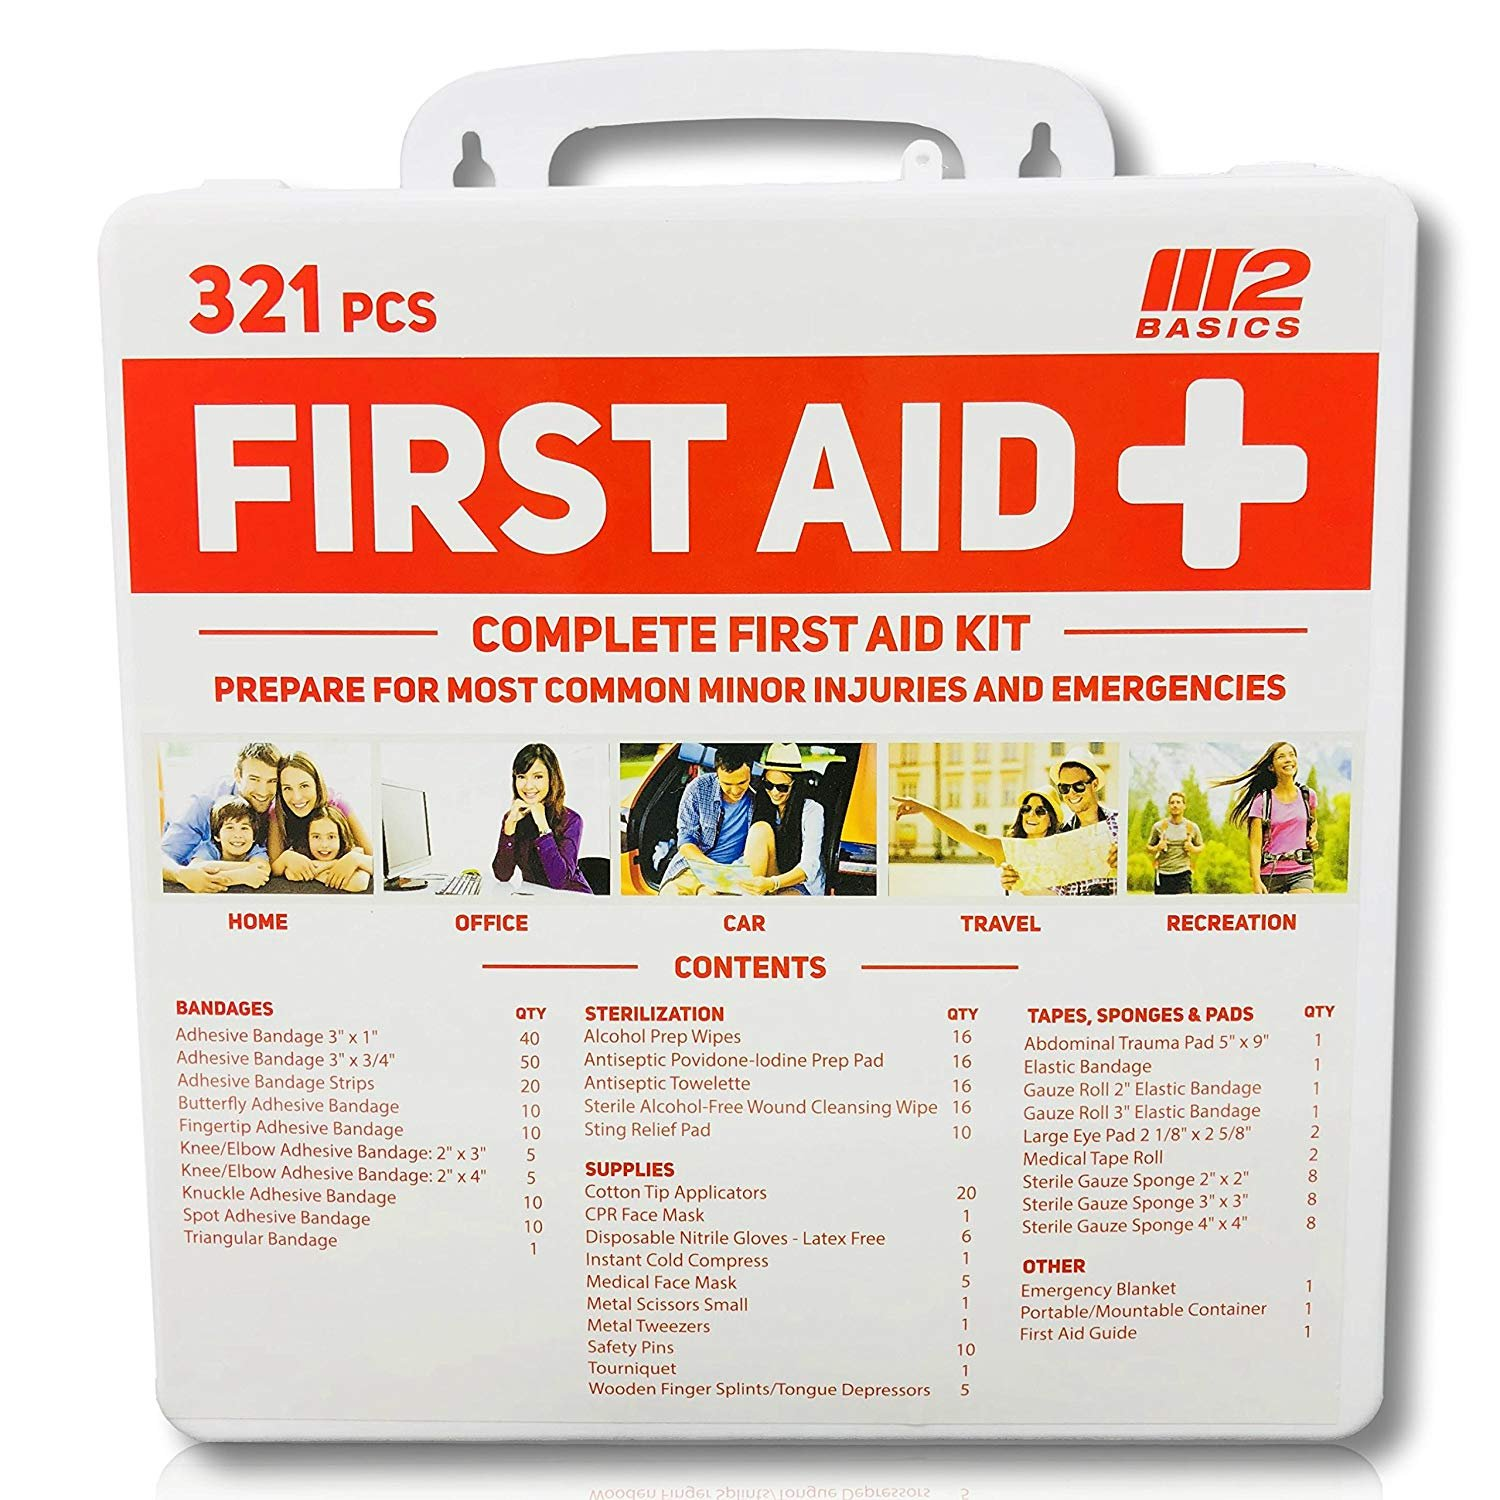 M2 BASICS 321 Piece Premium First Aid Kit w/Hard Case | Free First Aid Guide | Emergency Medical Supply | Home, Office, Outdoors, Car, Camping, Travel, Survival, Workplace by M2 BASICS